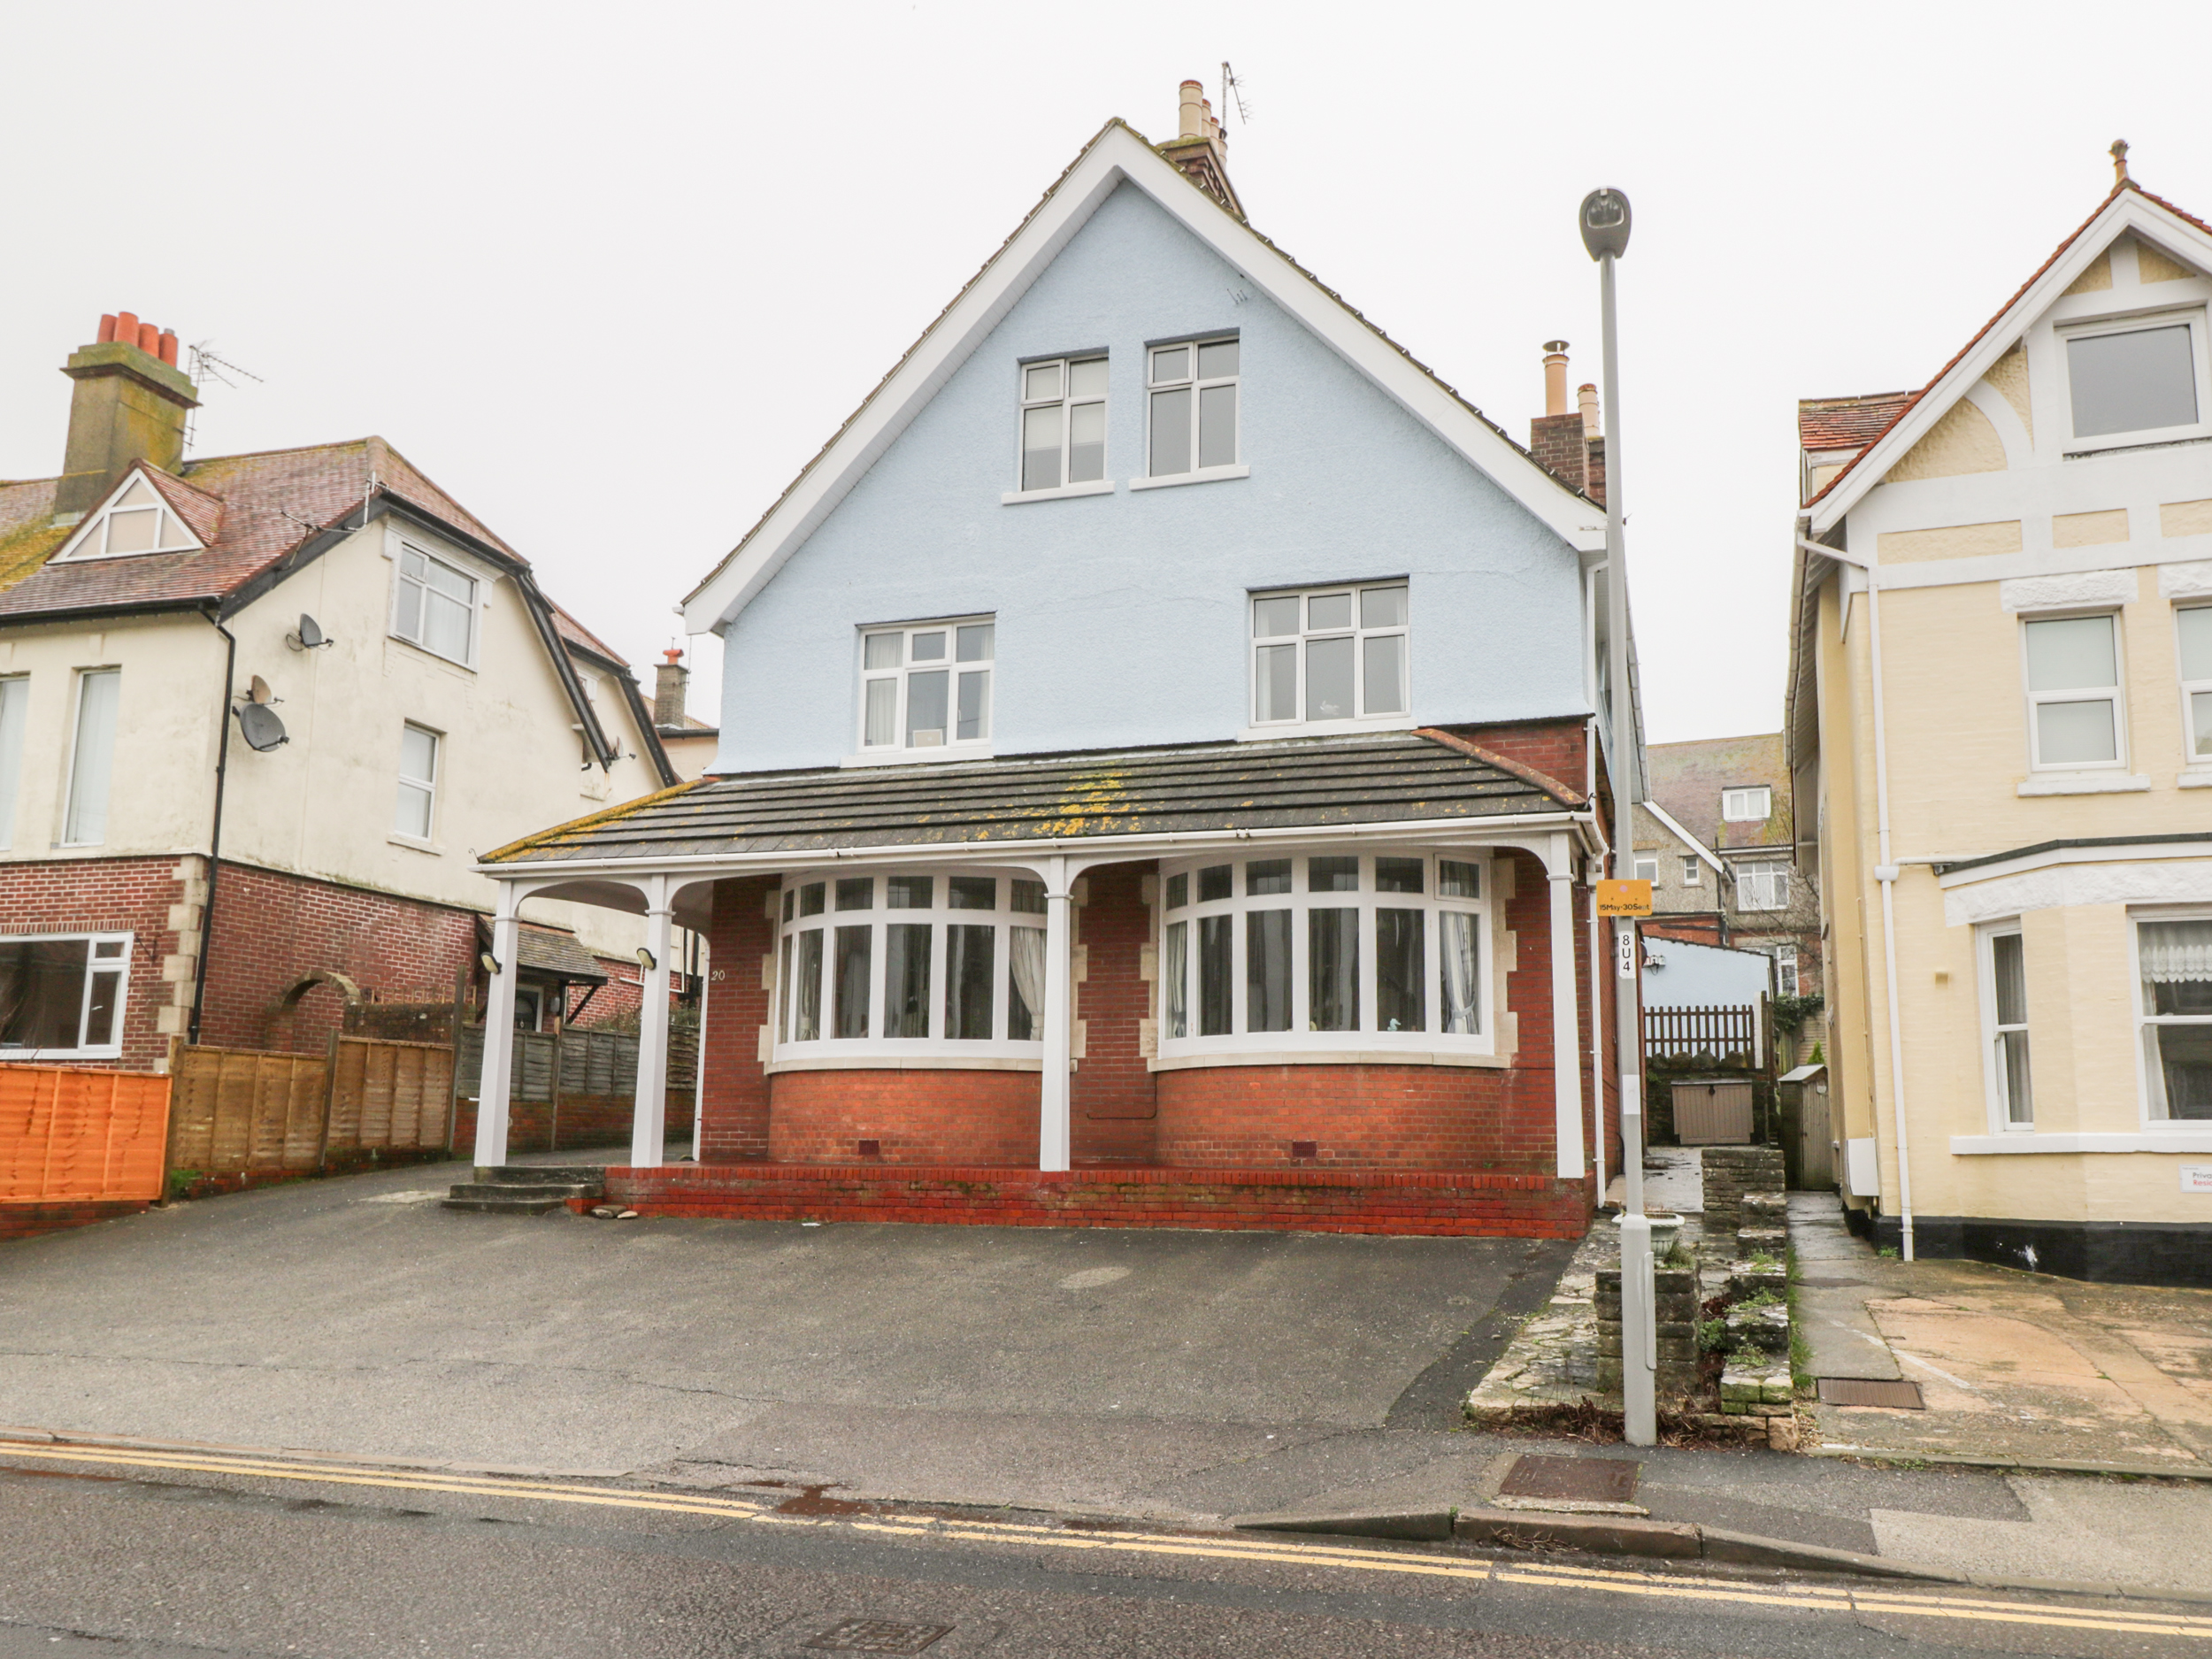 7 bedroom Cottage for rent in Swanage